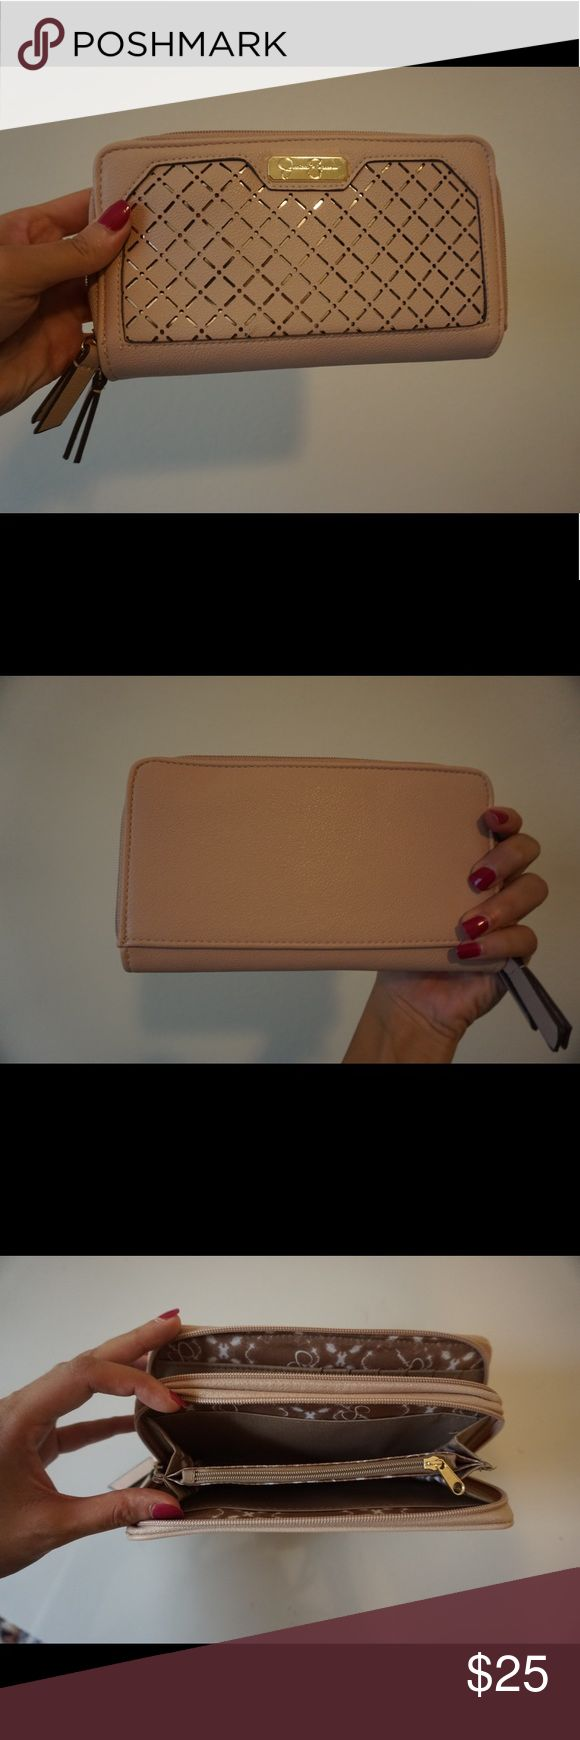 Brand new Jessica Simpson wallet No tears or stains. Brand New never used wallet Jessica Simpson Bags Wallets